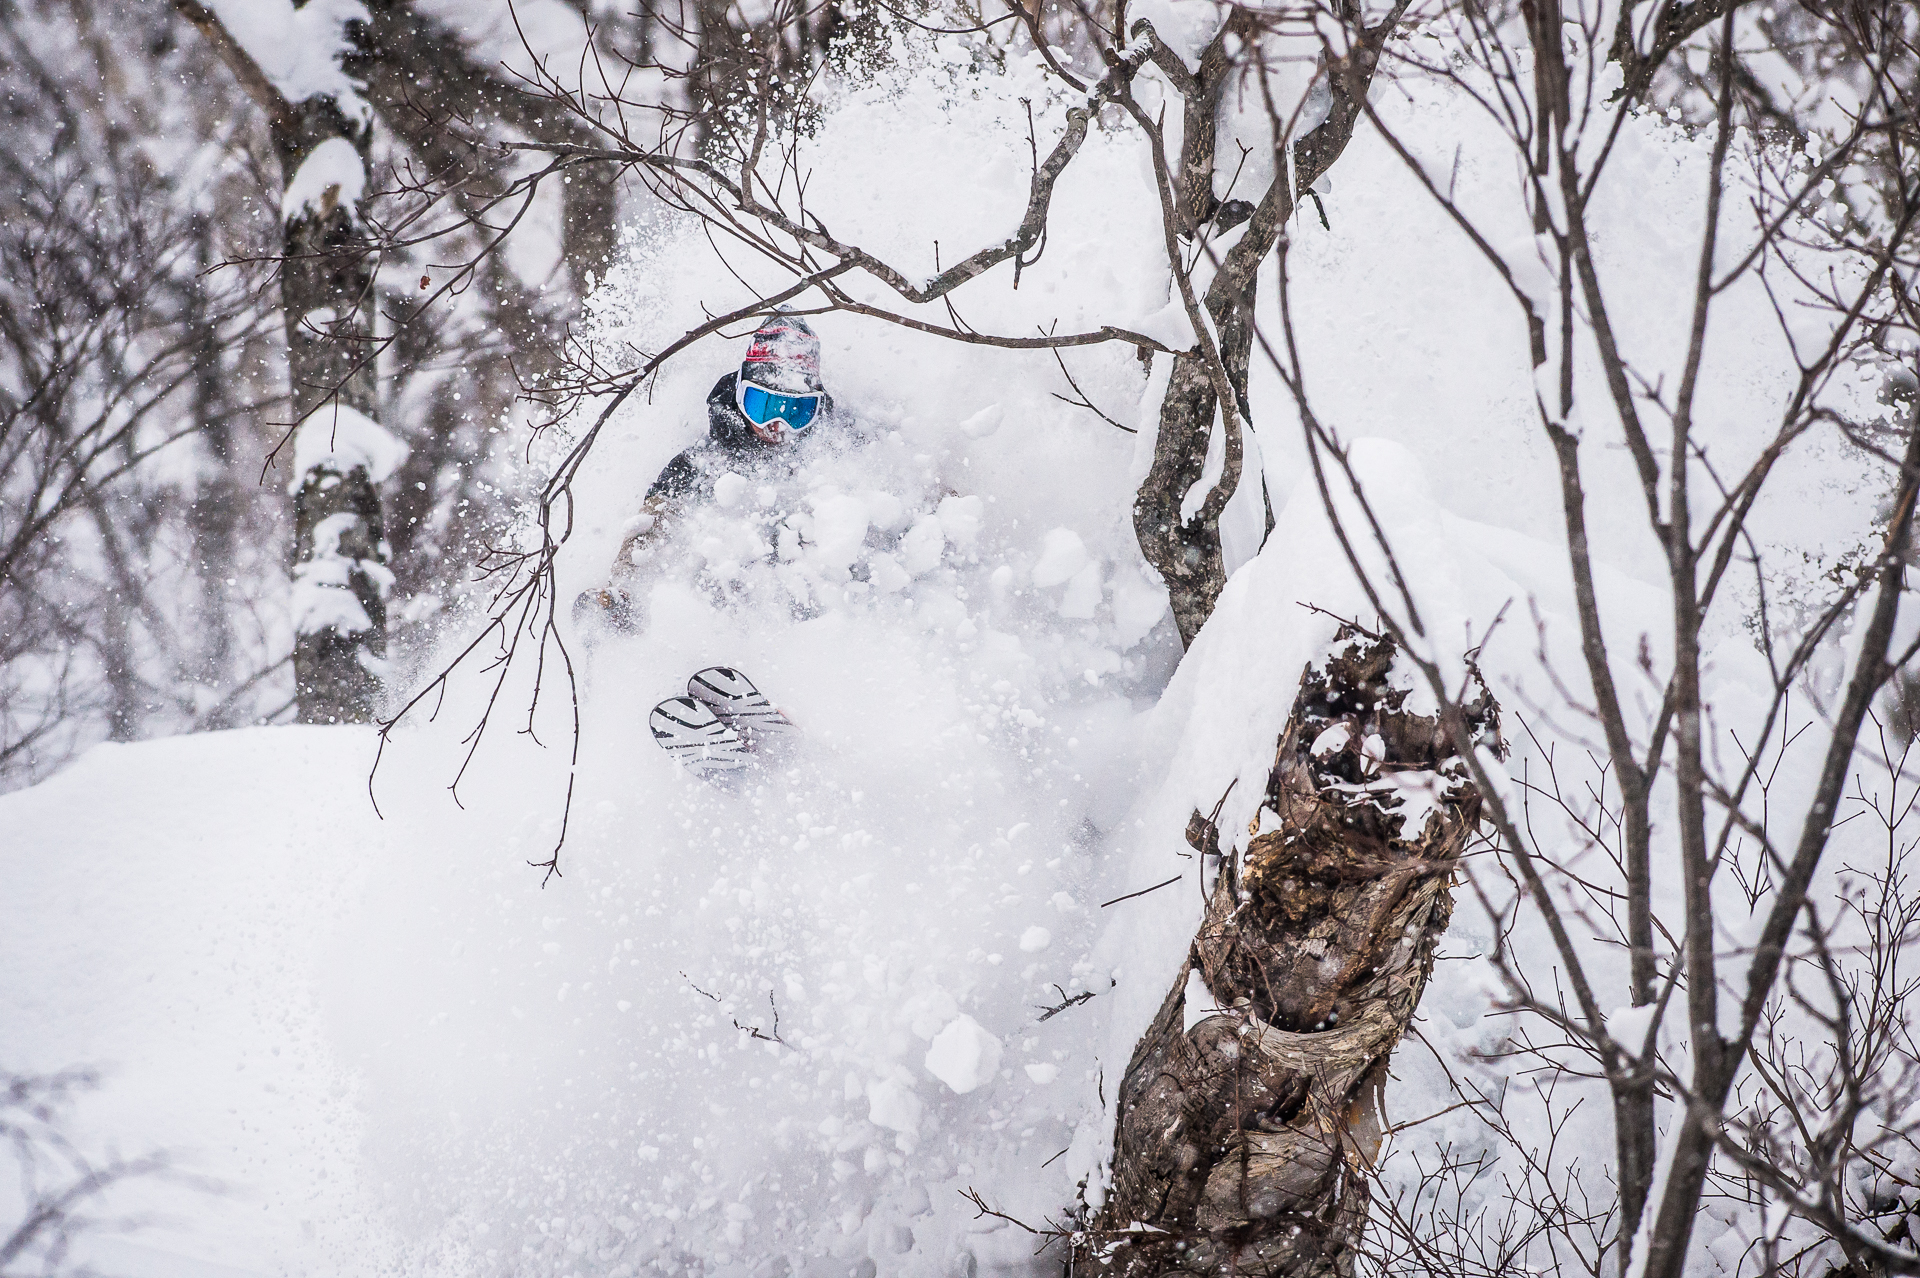 Pettit achieved success because he is, frankly, really good at what he does. And in the air, or skiing pow, no one is smoother. PHOTO: Blake Jorgenson/Superproof